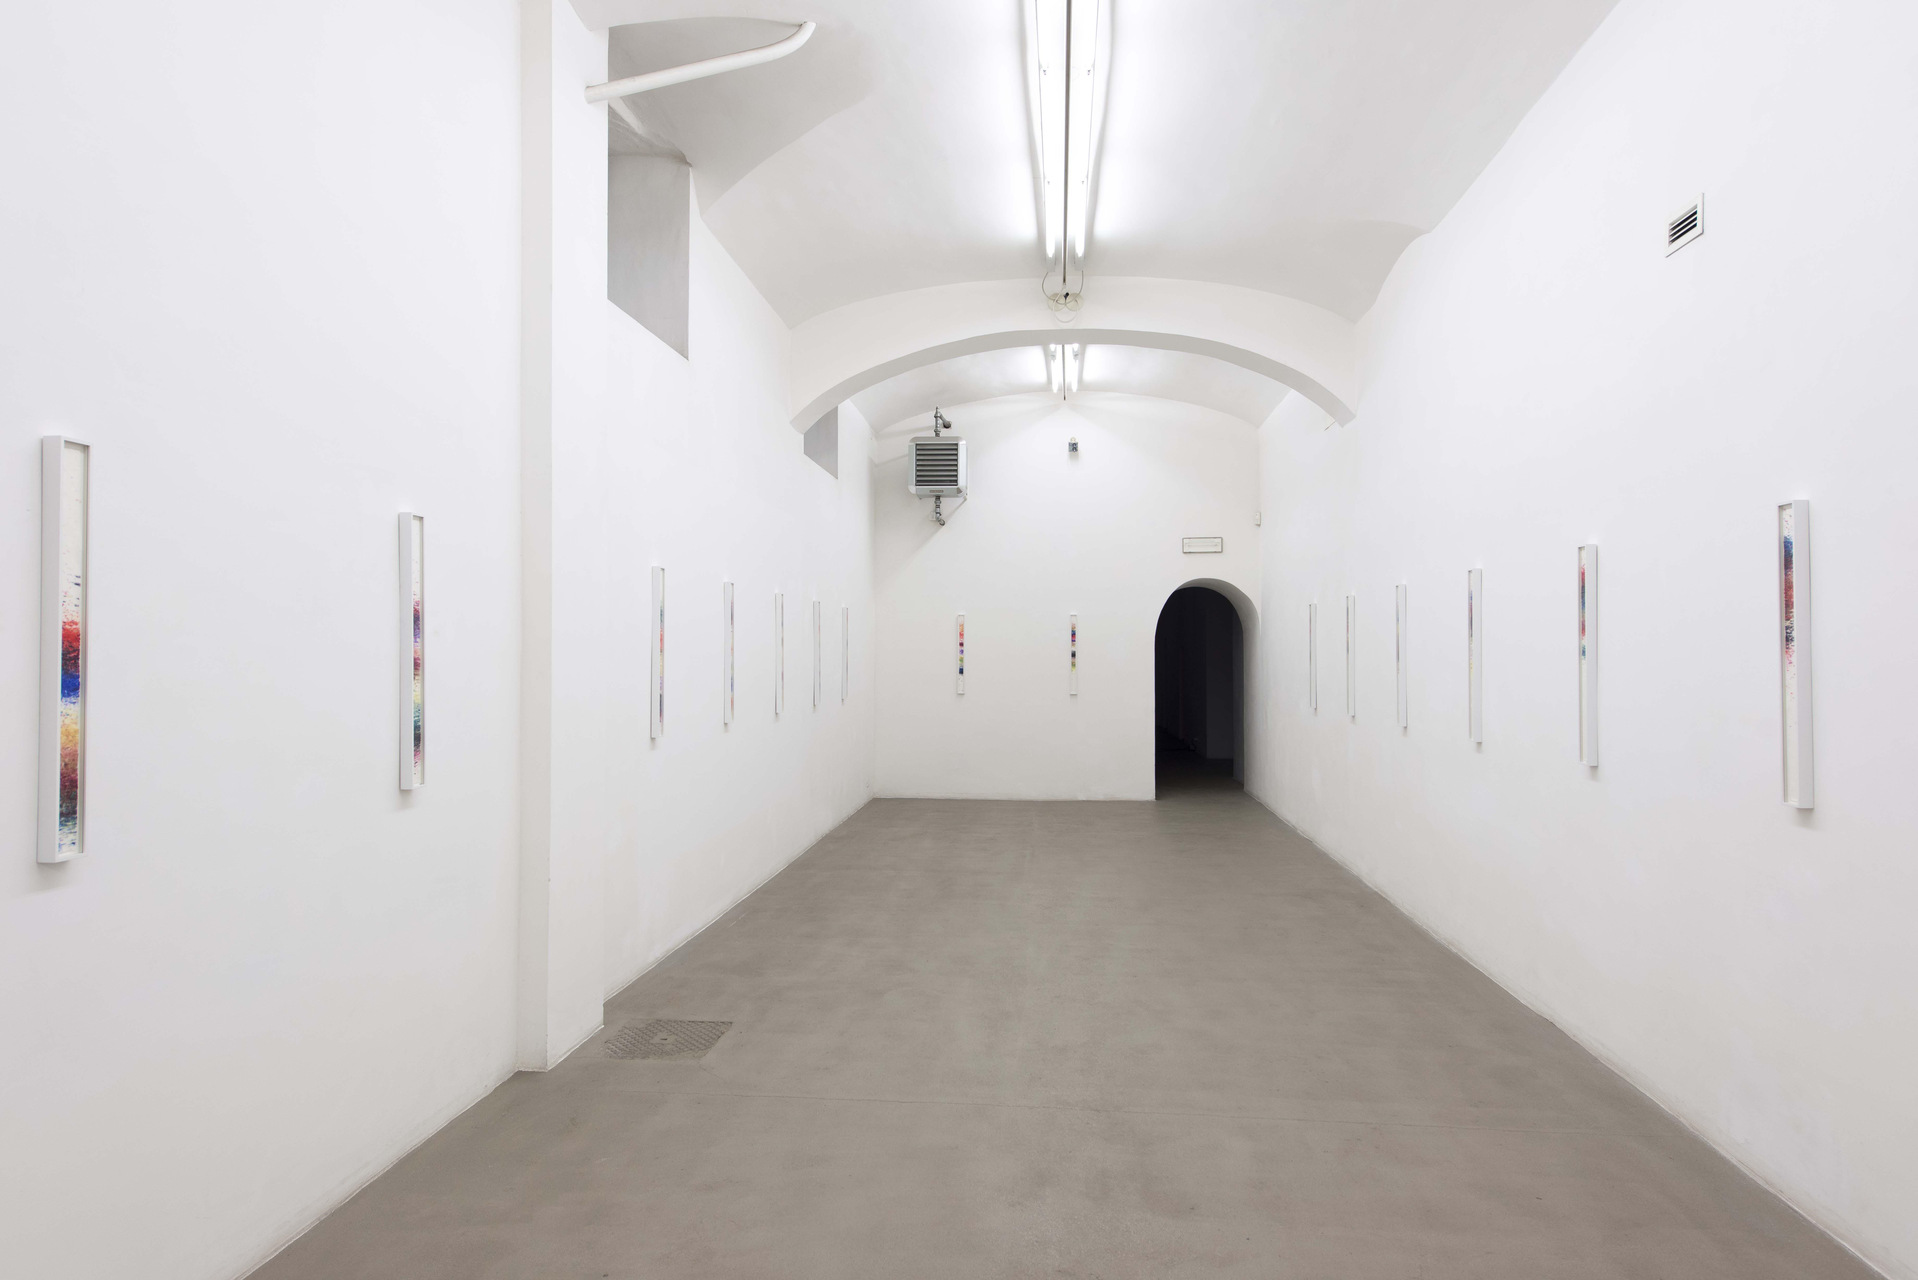 A_FG_Installation view_15